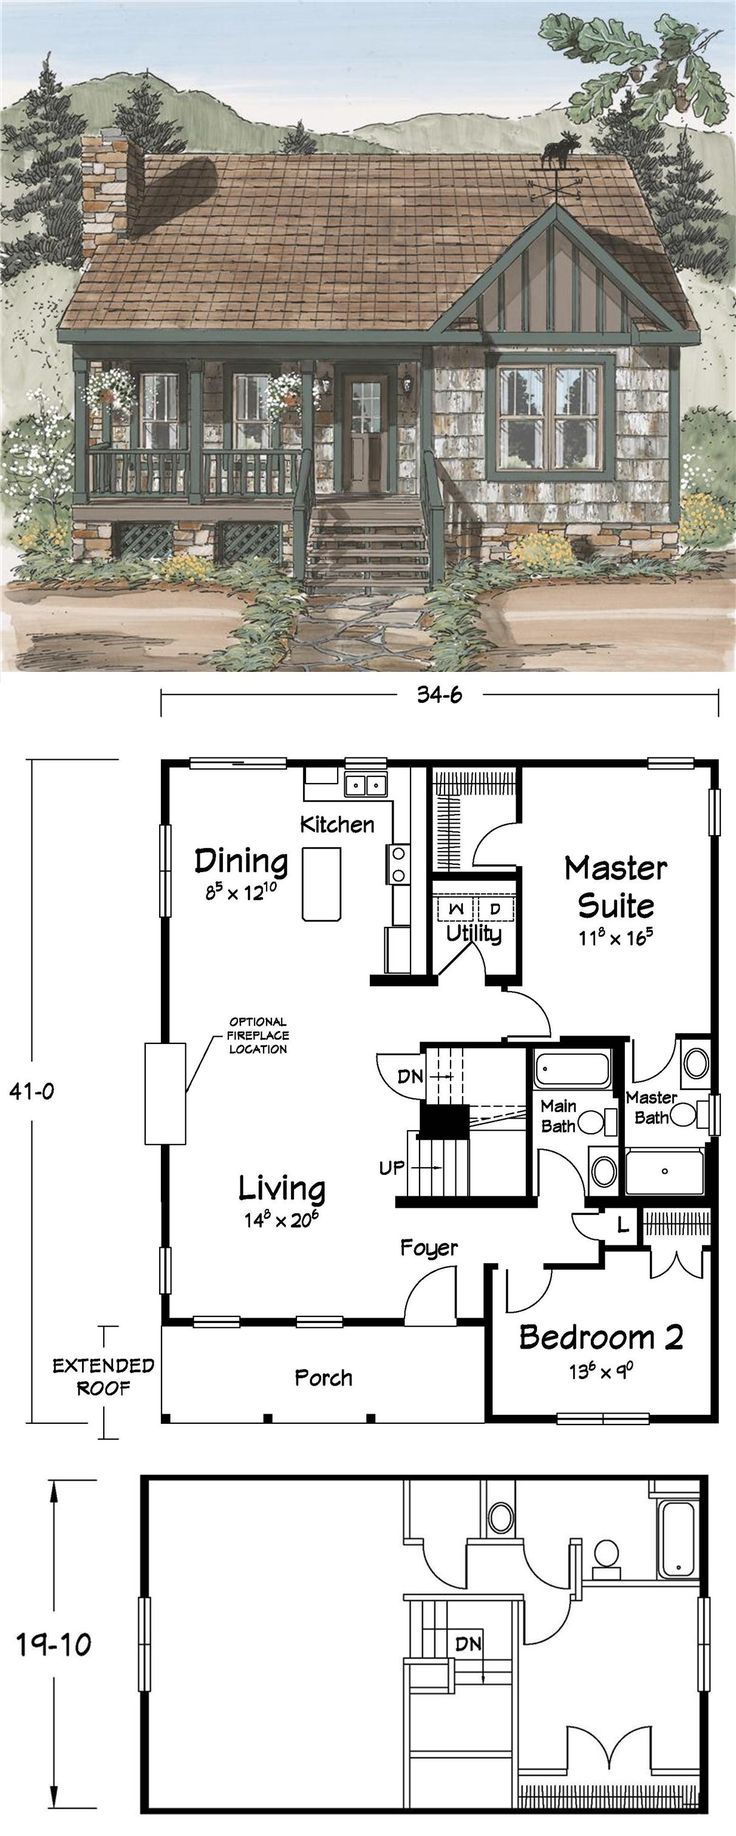 Cute floor plans tiny homes pinterest cabin small for Micro cabin floor plans